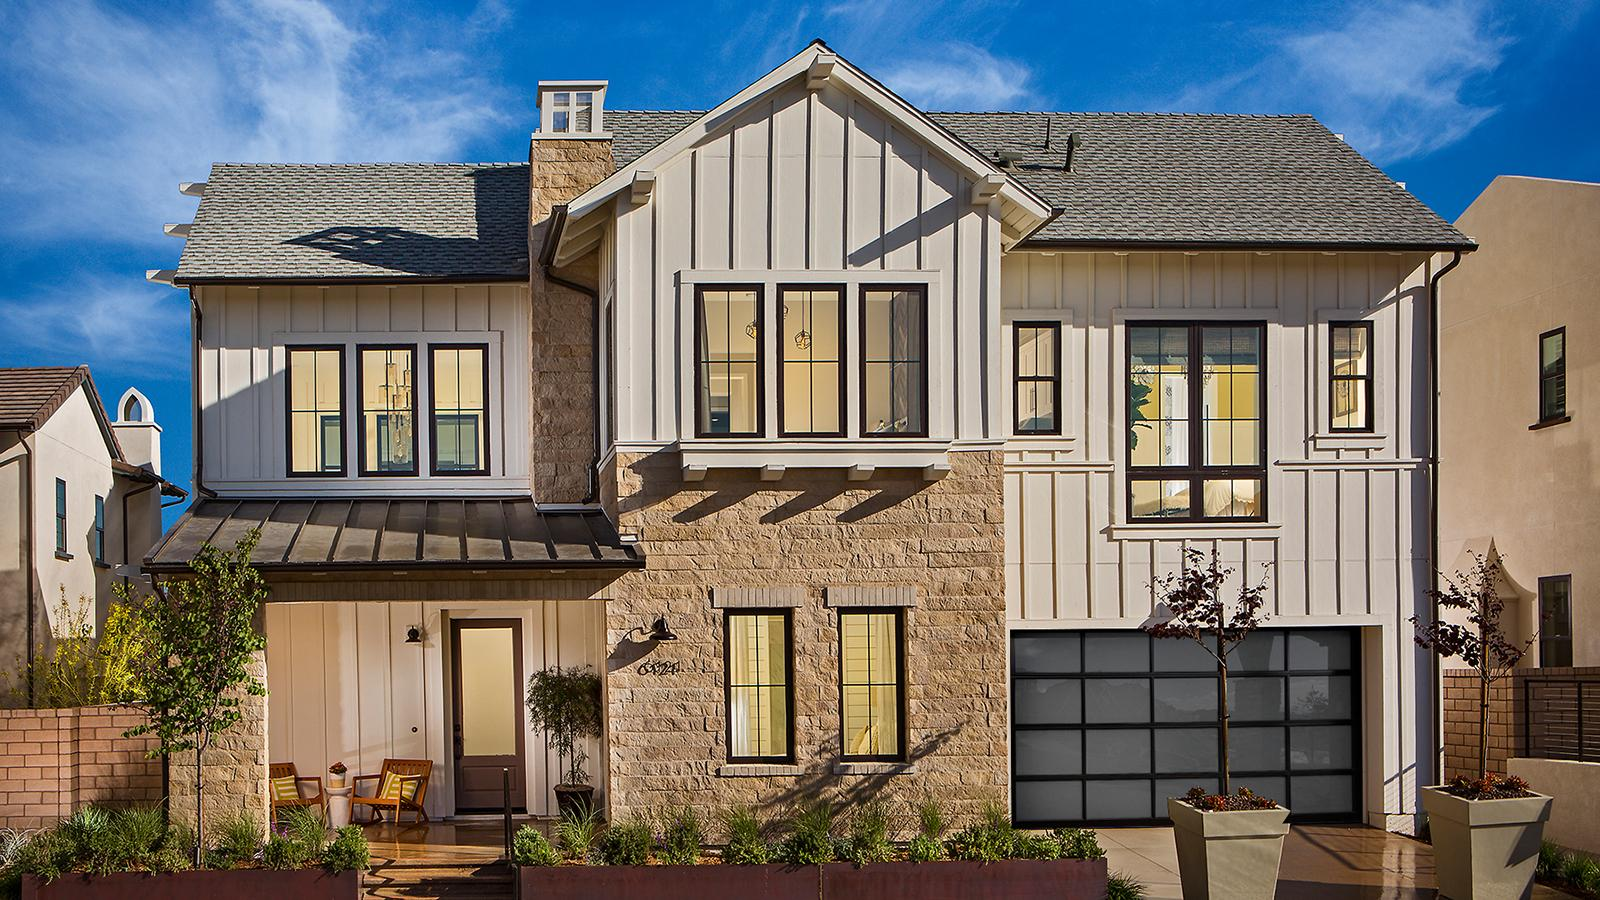 AlmeriaatPacificHighlandsRanch - Robert Hidey Architects